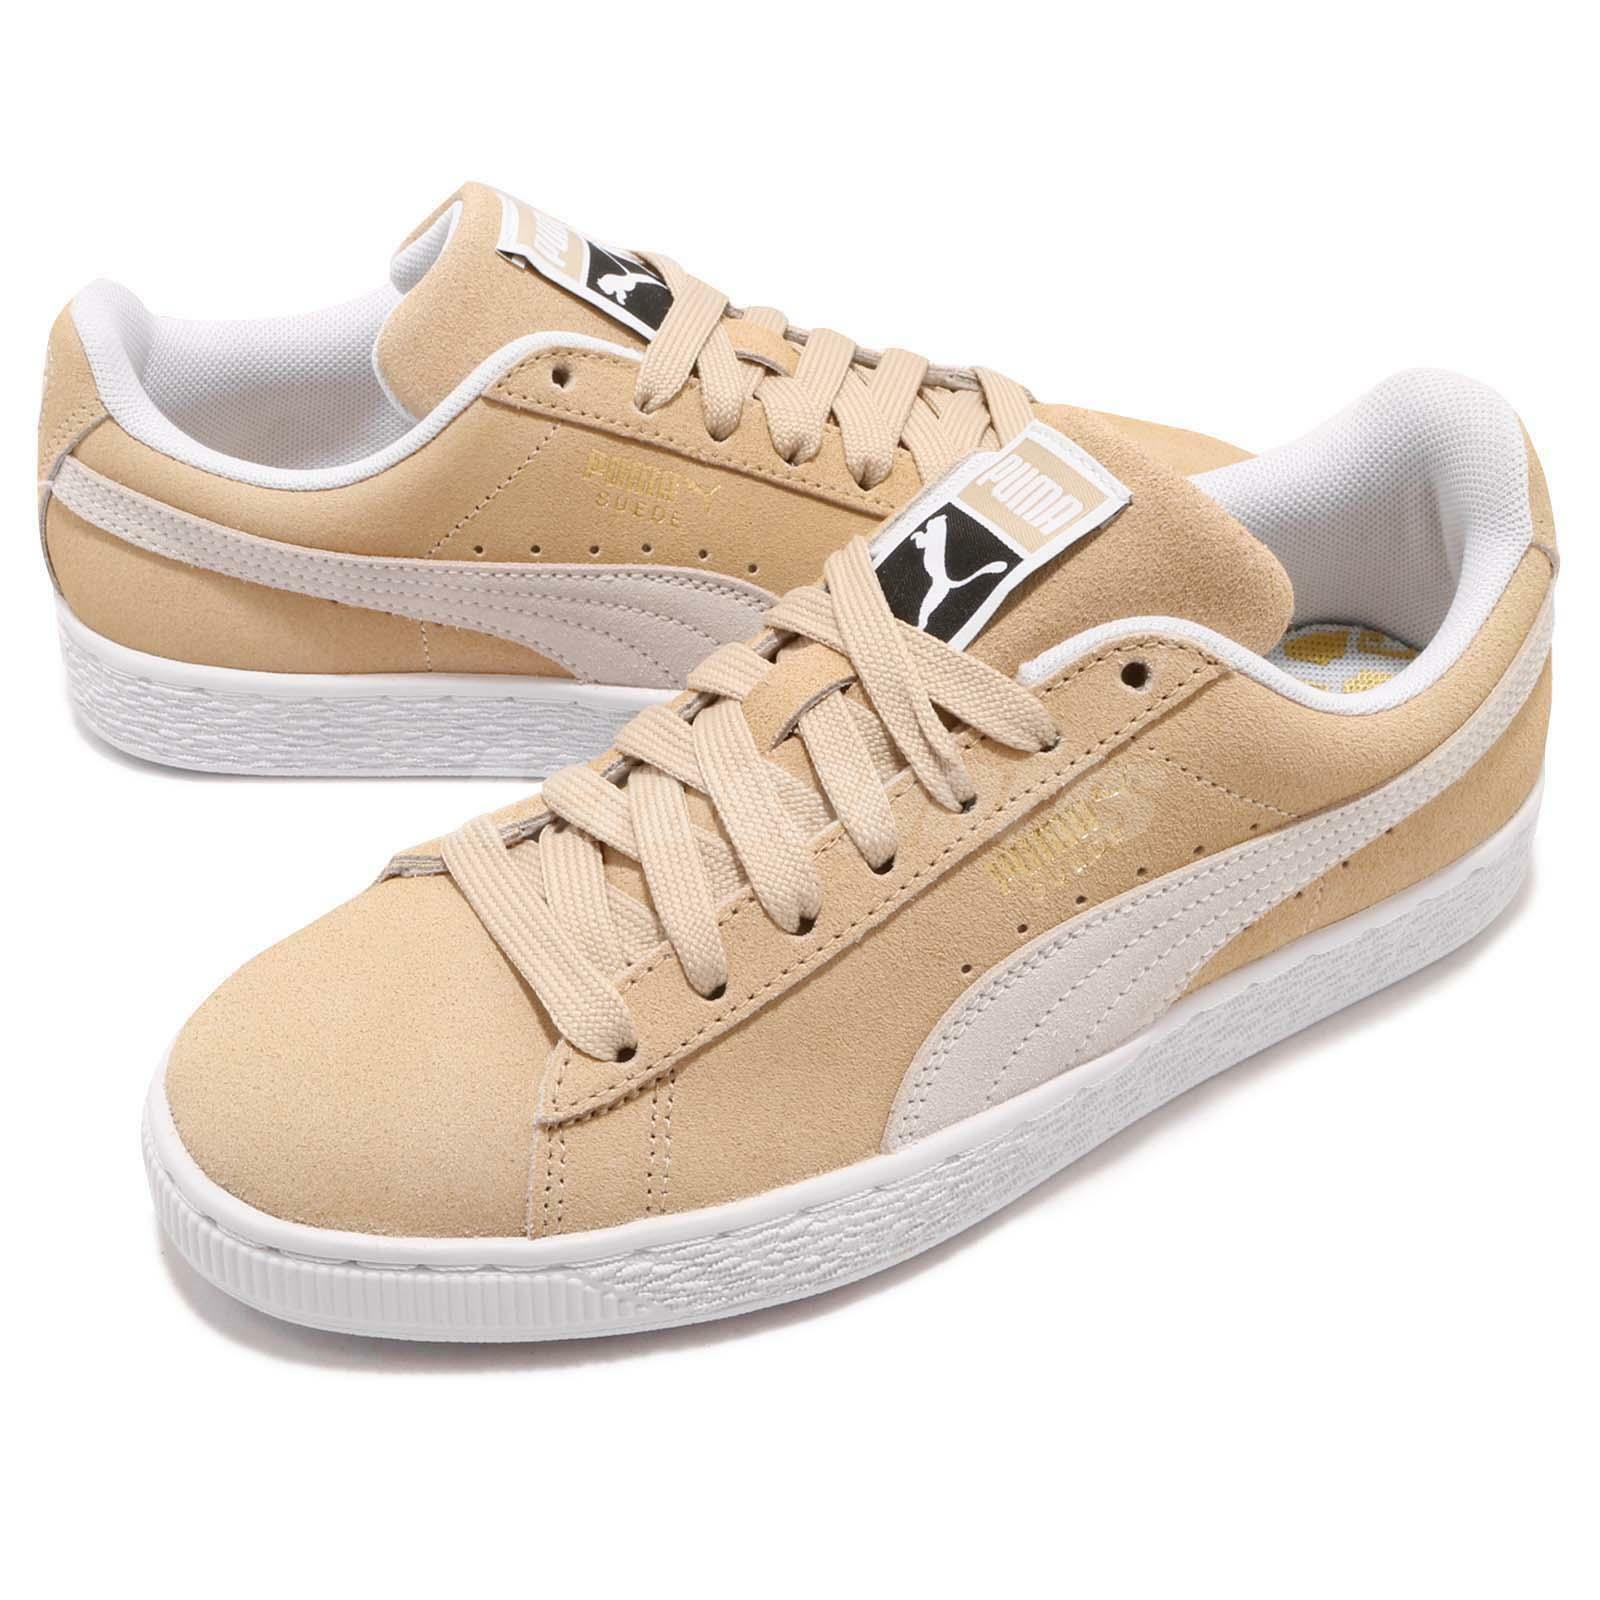 PUMA SUEDE CLASSIC LOW SNEAKERS MEN SHOES CREAM WHITE 365347-11 SIZE 9 NEW